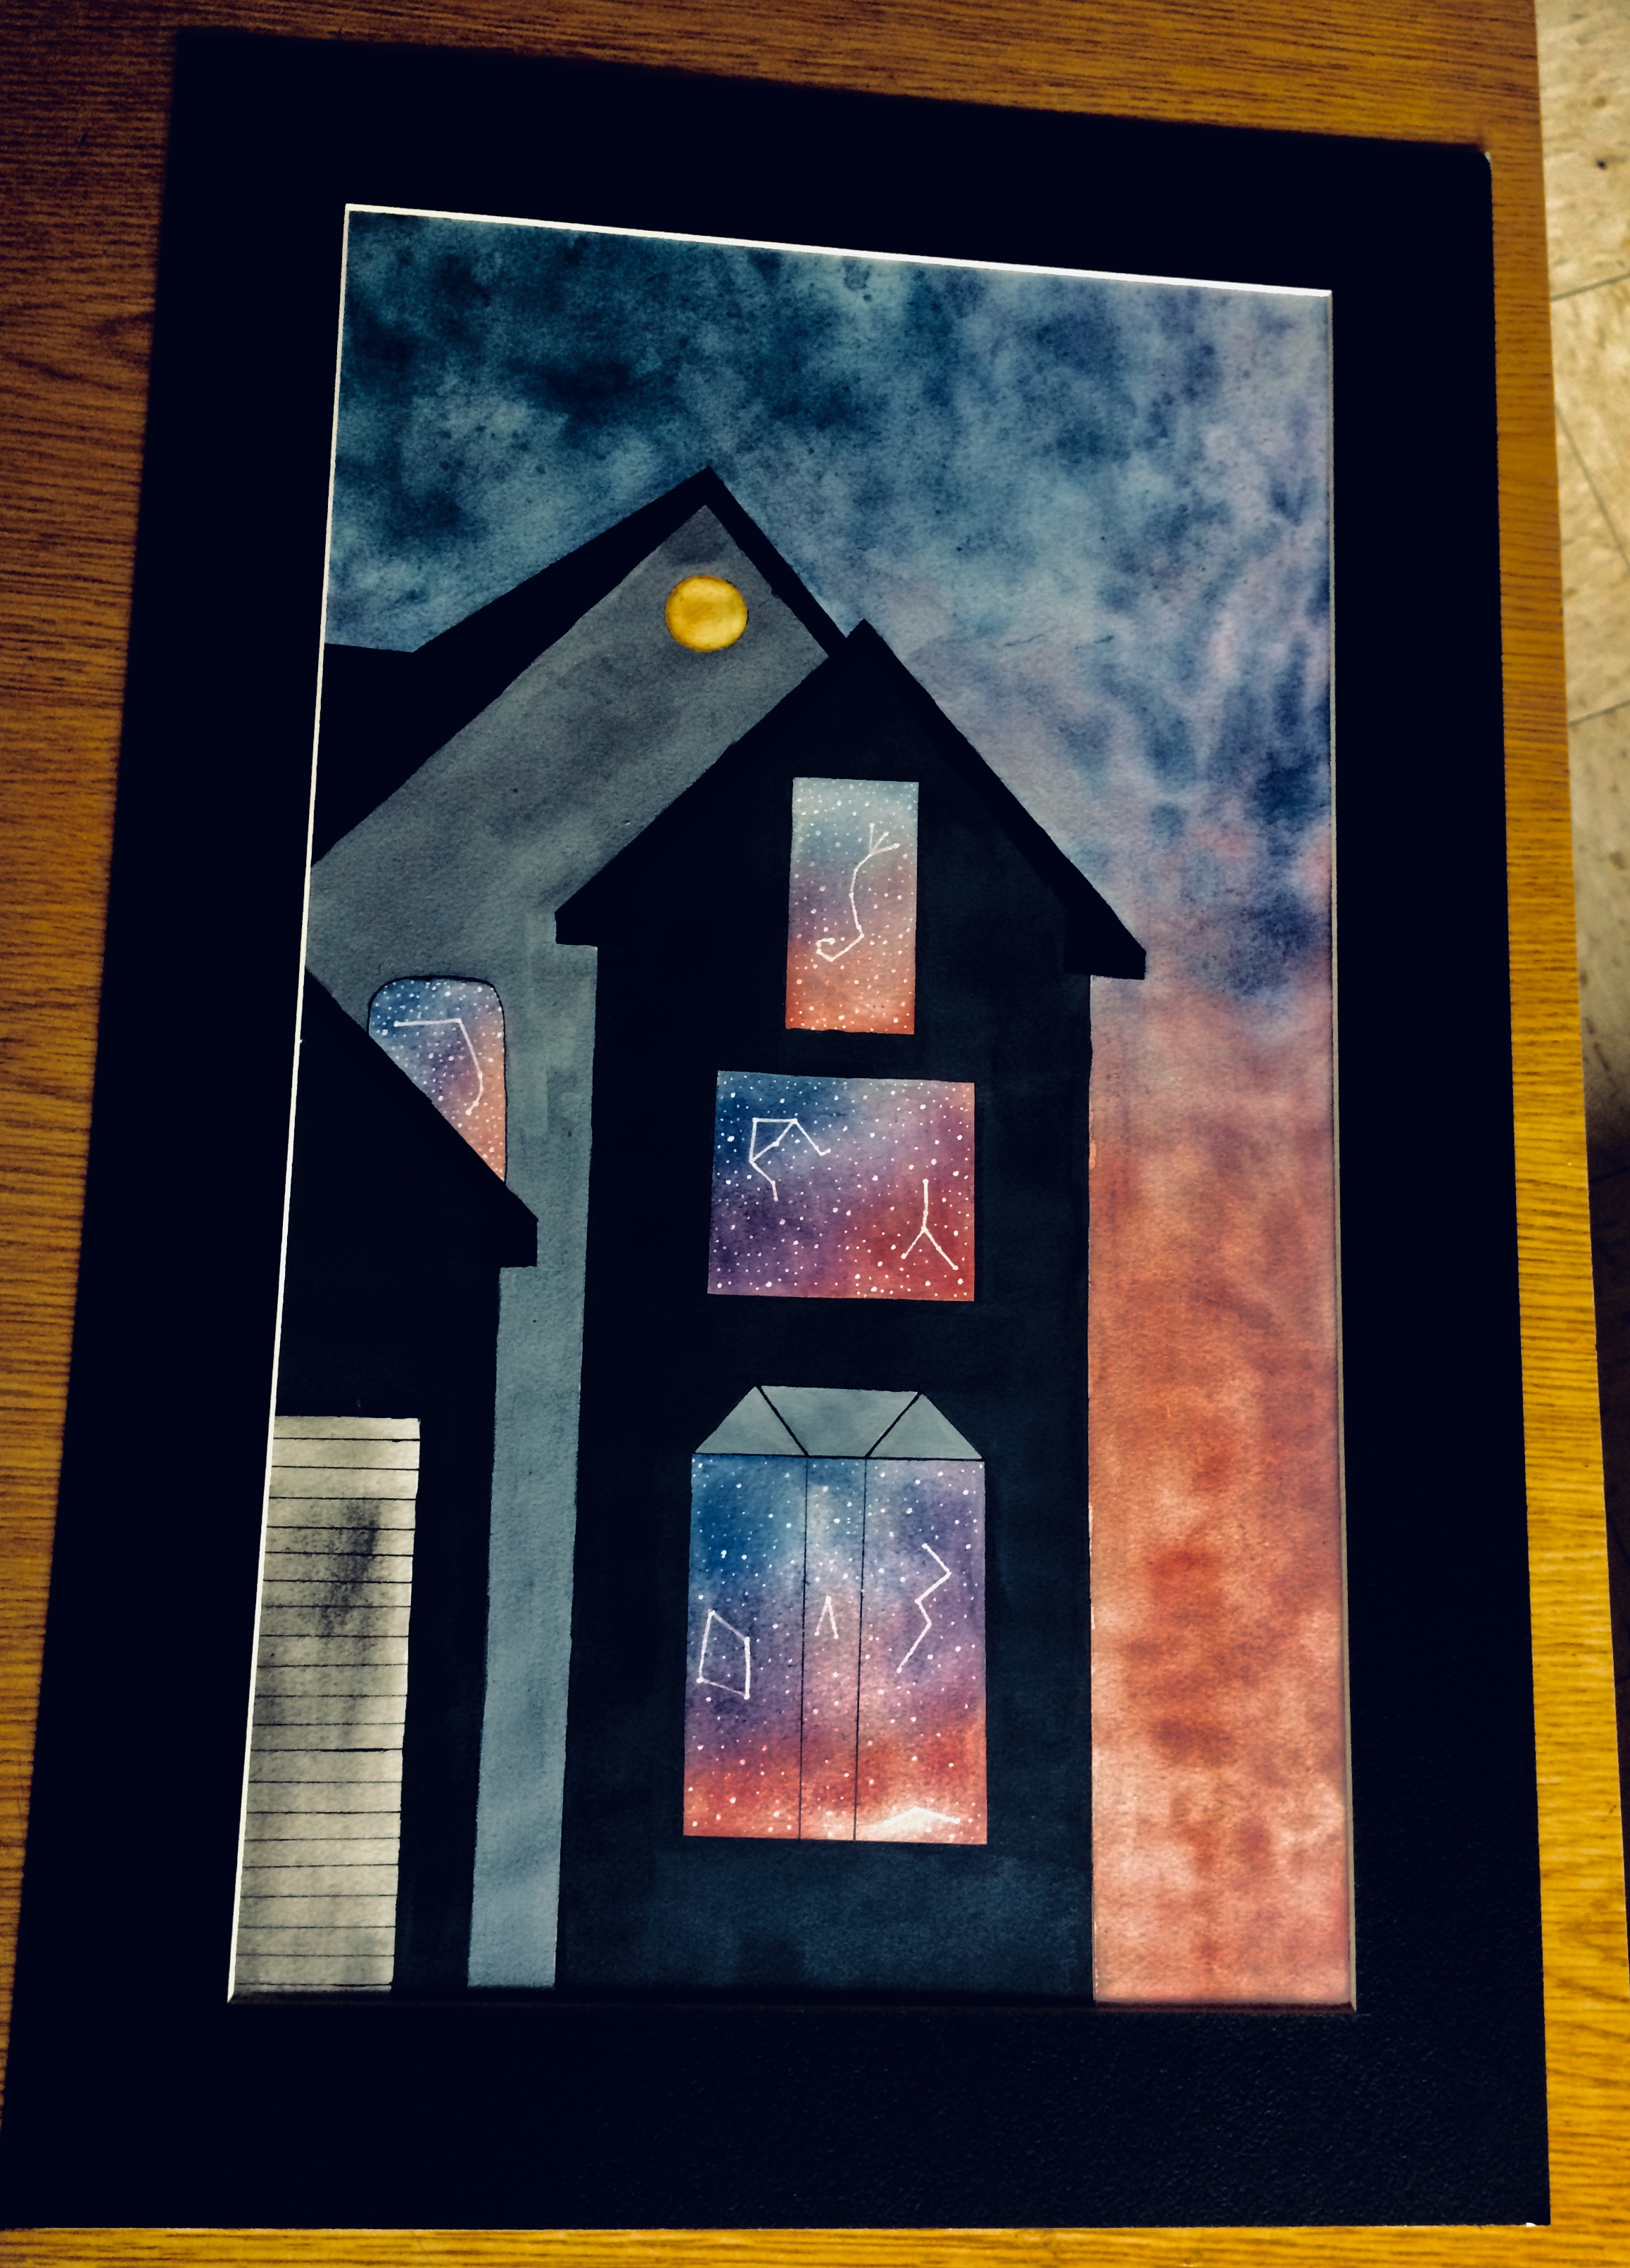 I enjoy incorporating the idea of space and time into my pieces and felt a galaxy theme in the windows of my house reflected that idea. It's really up to the viewer on how they interpret it in the end.